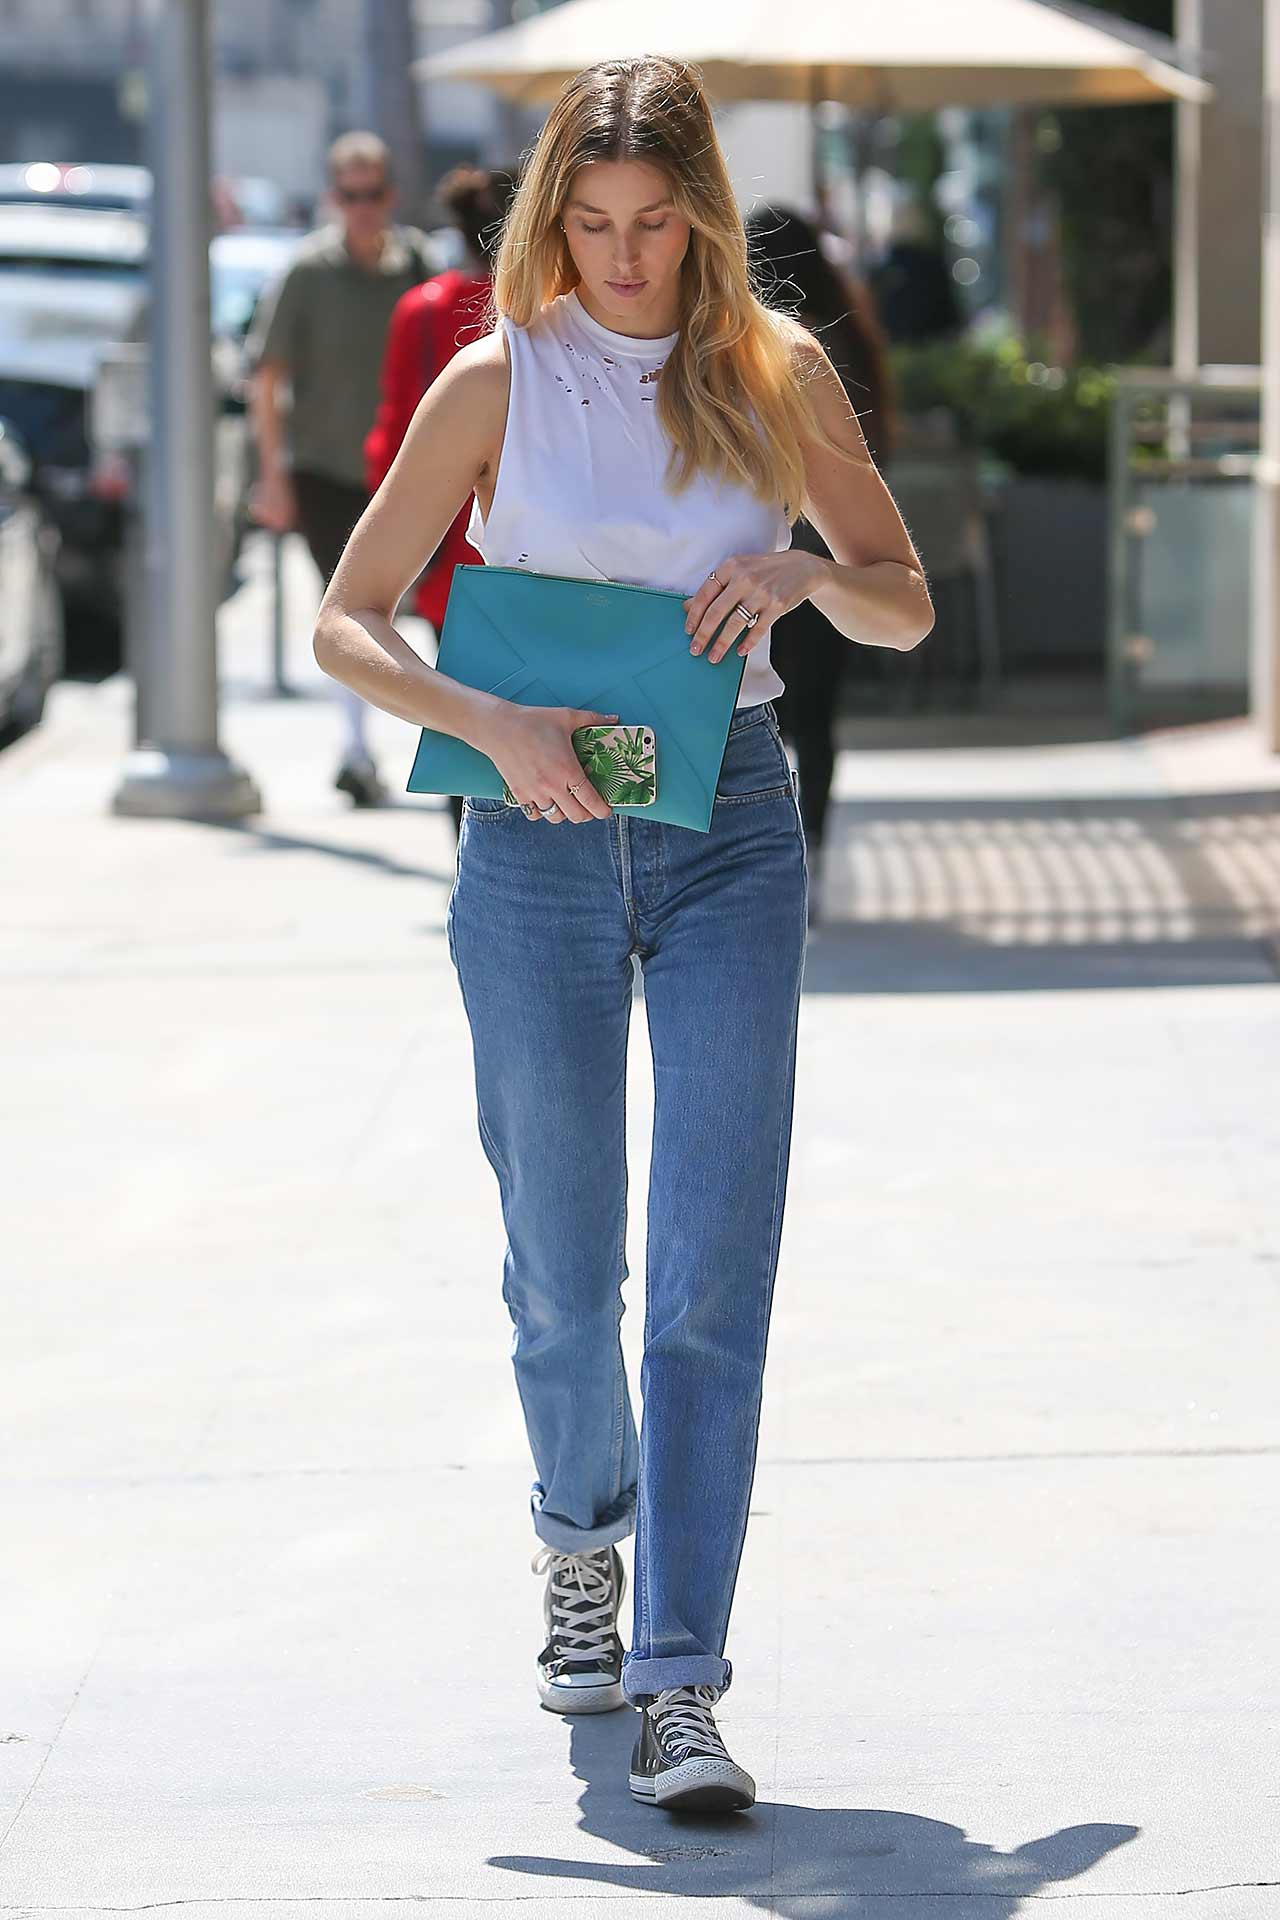 whitney-post-levis-vintage-jeans-2